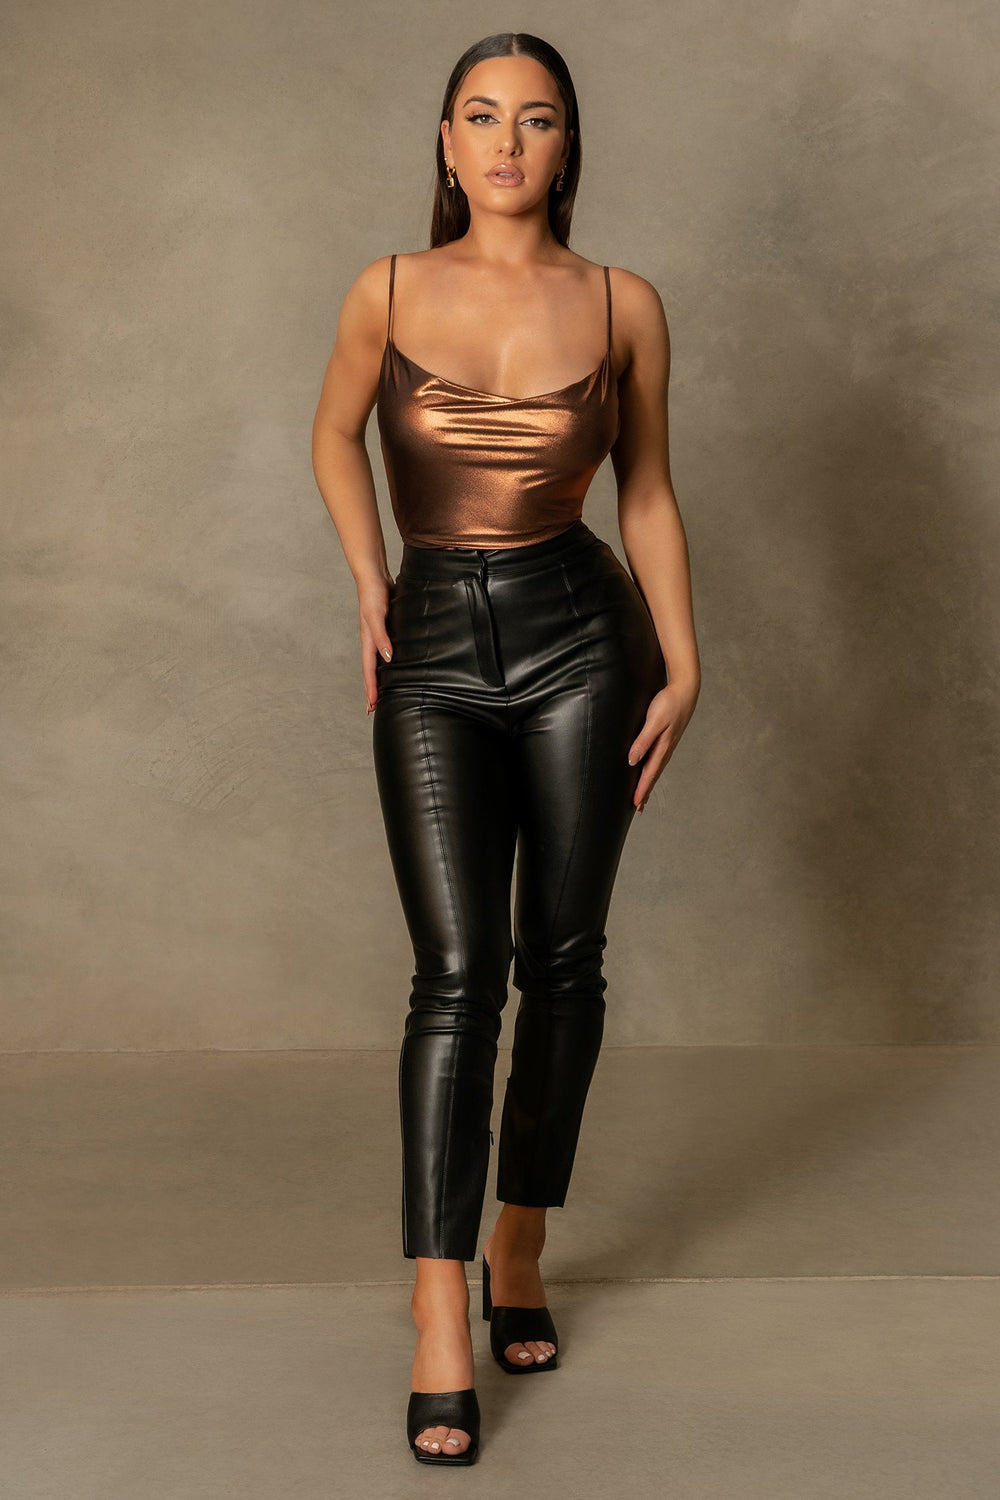 Cita Metallic Cowl Bodysuit - Chocolate - MESHKI ?id=16109880344651